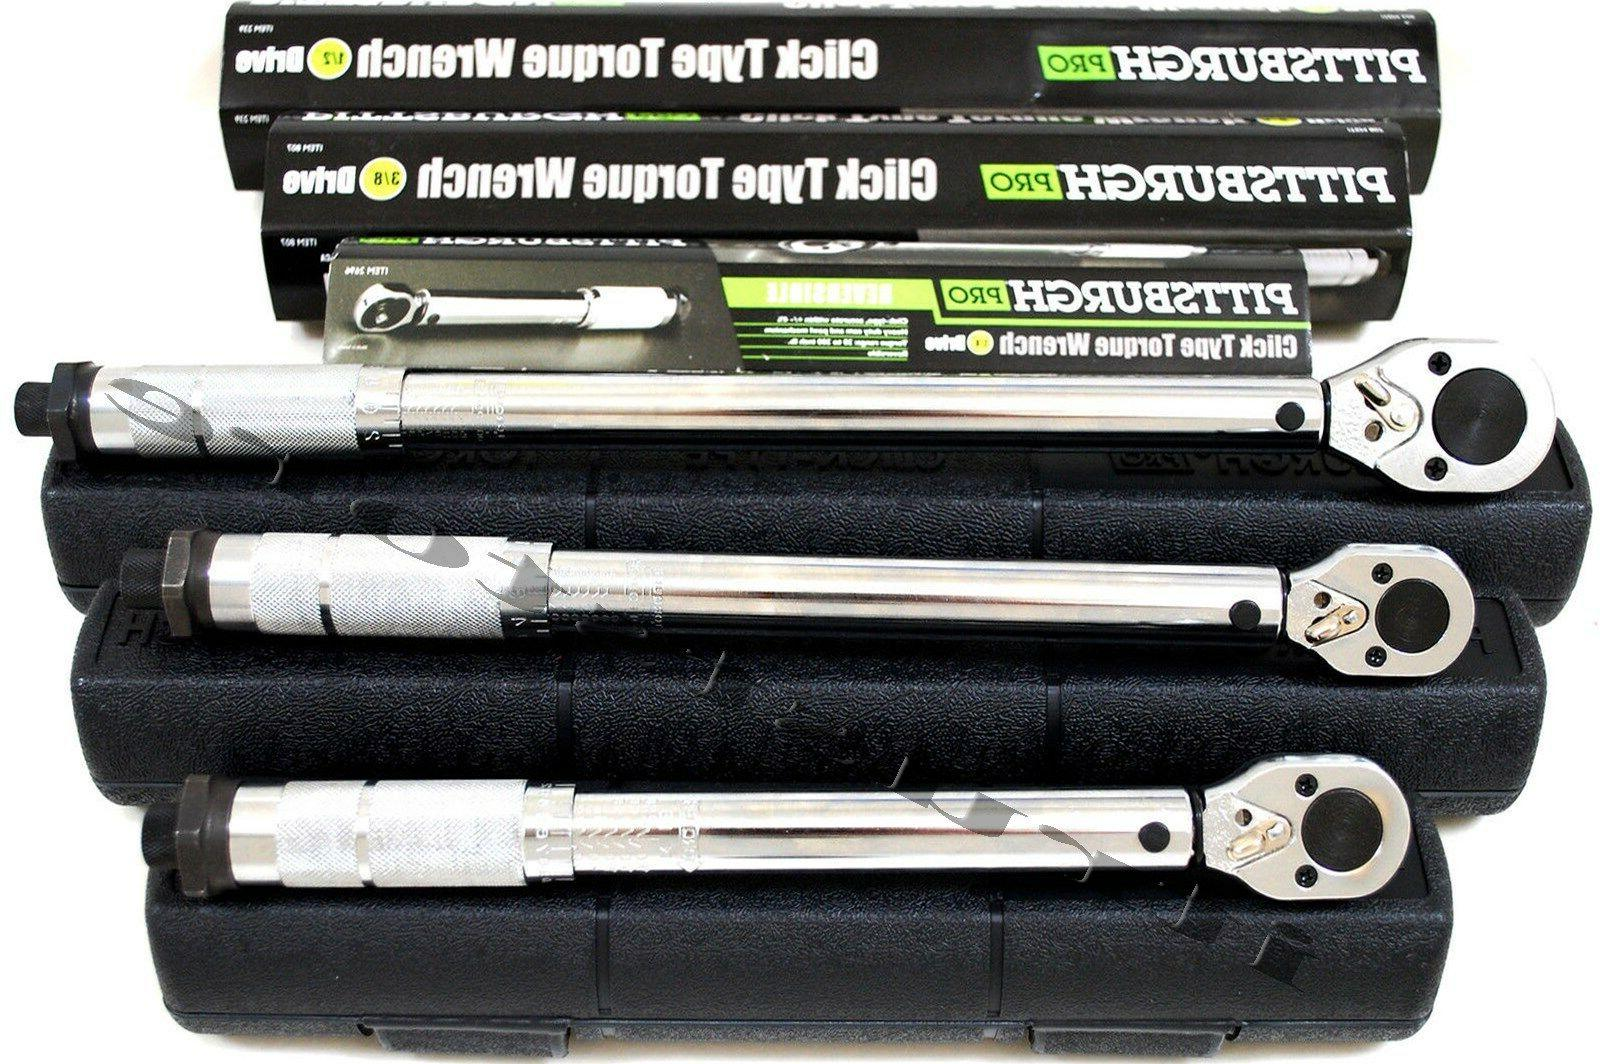 pittsburgh click stop torque wrench 1 2